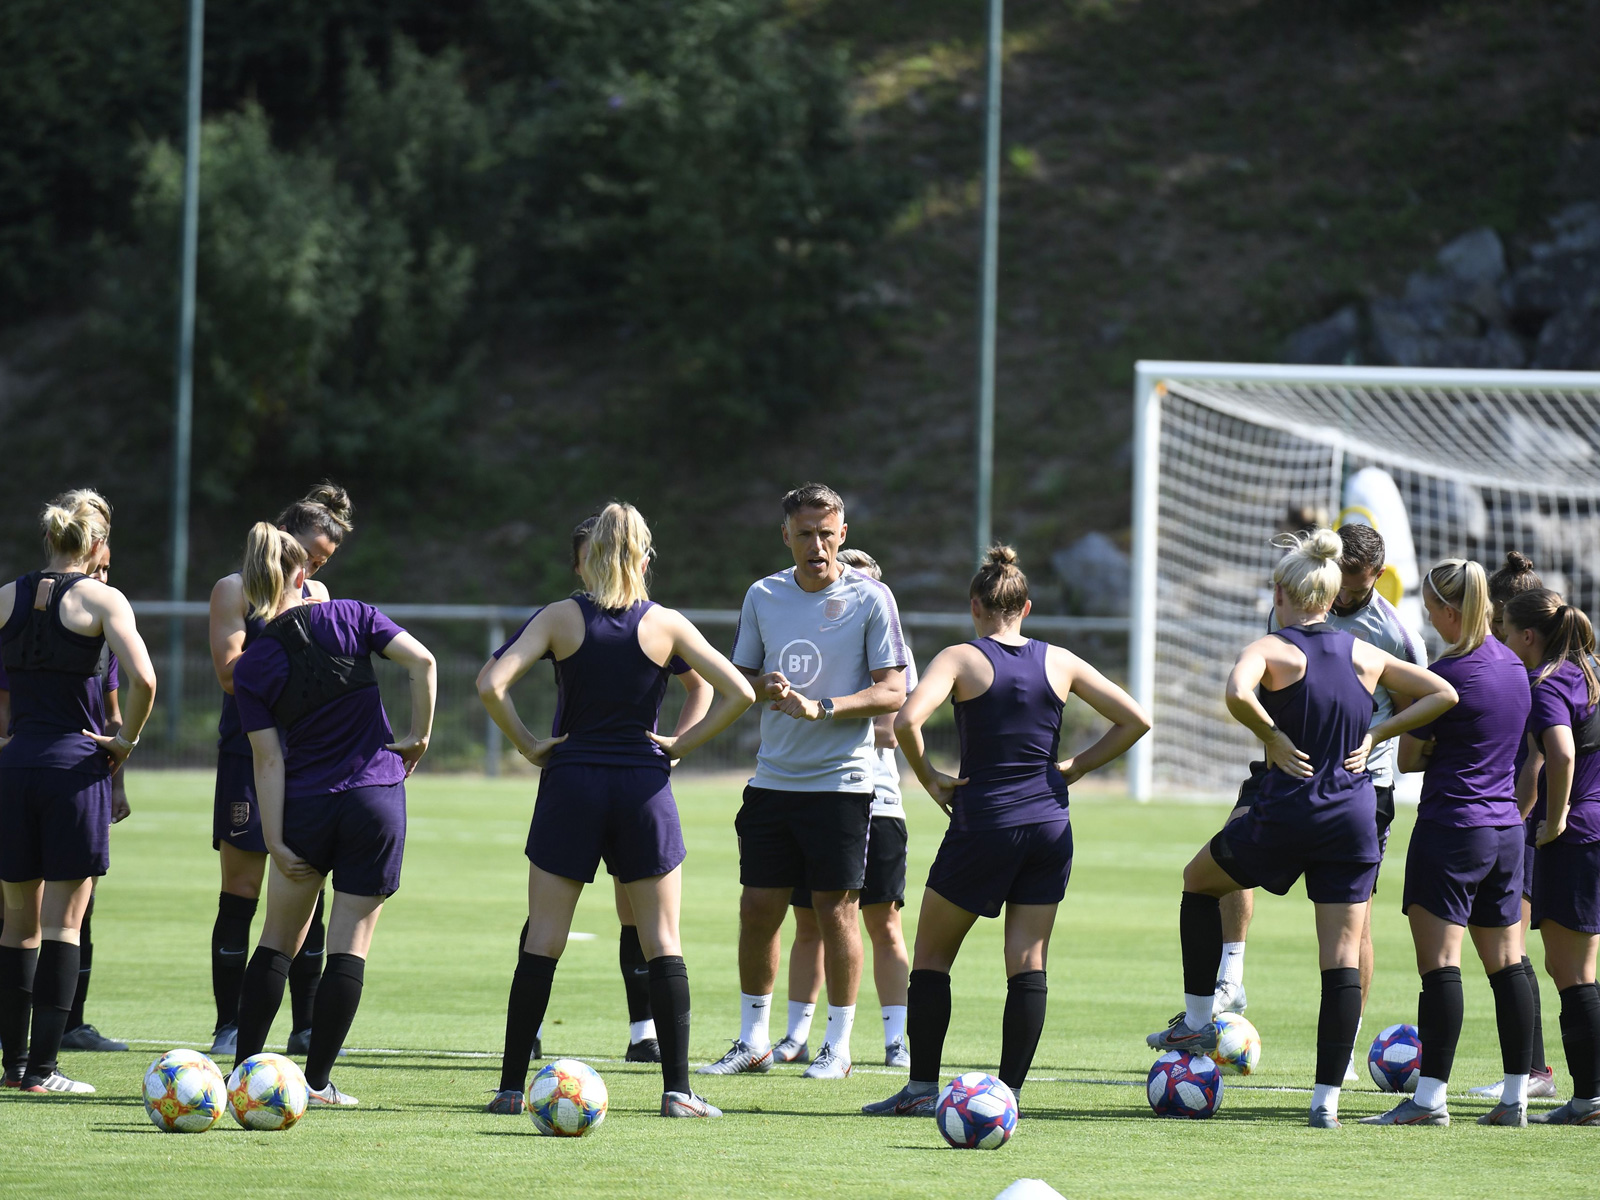 England coach Phil Neville leads training before the Women's World Cup semifinals